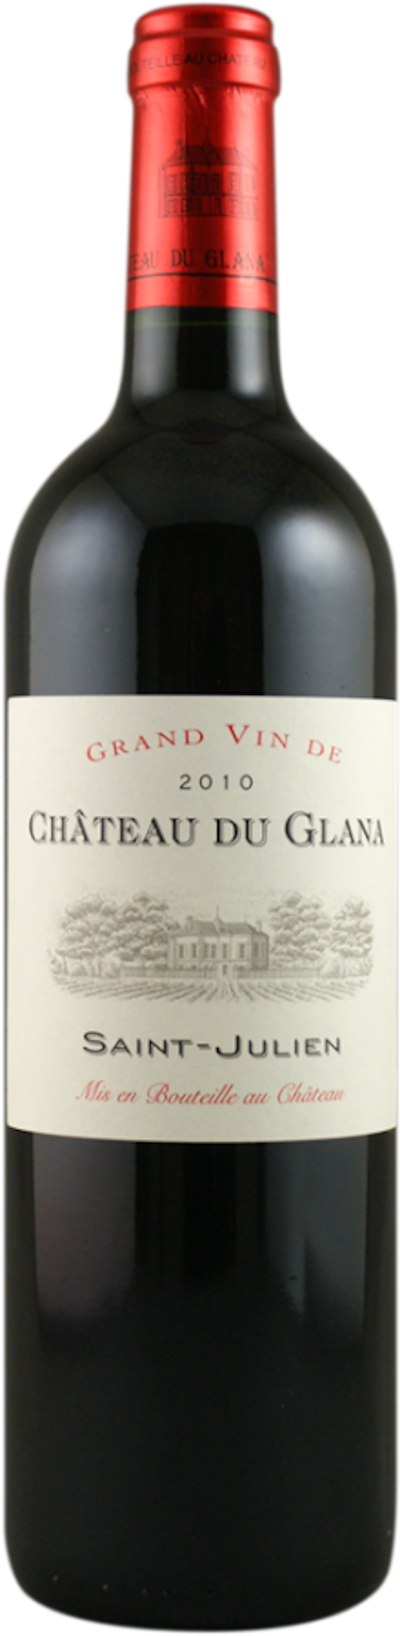 Chateau du Glana - Saint Julien, 2012